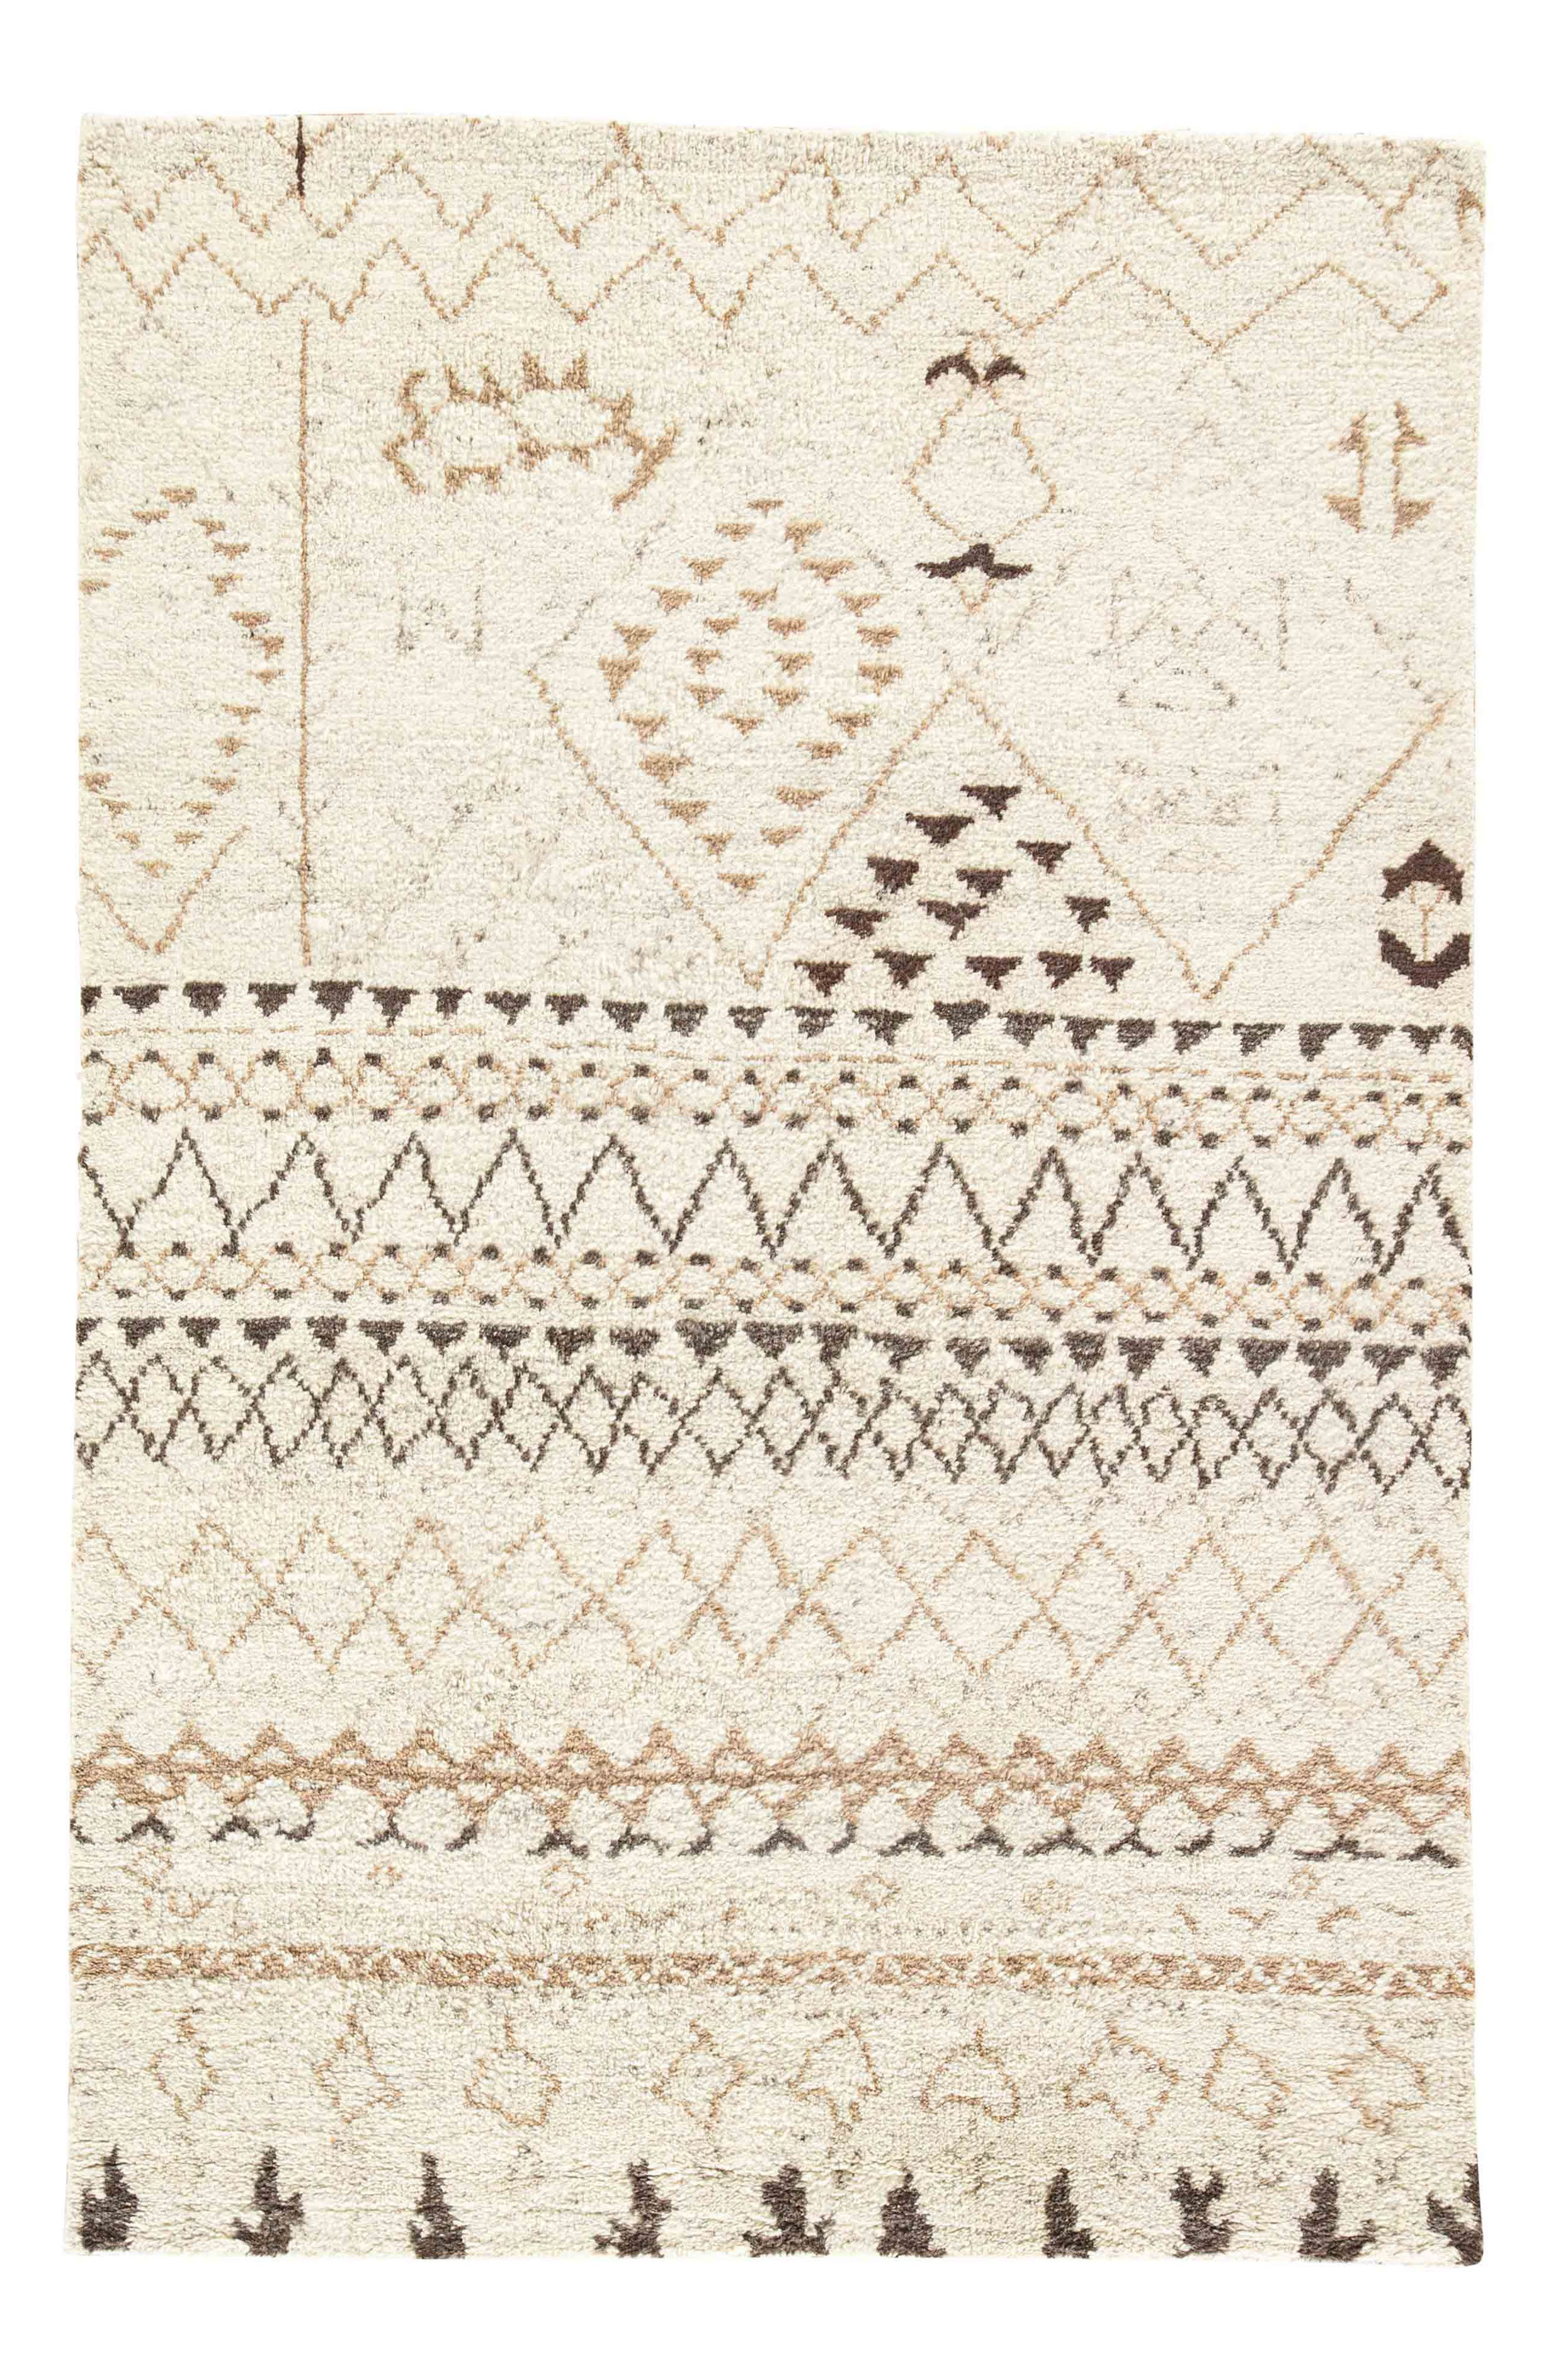 'Zola Zag' Wool Area Rug,                         Main,                         color, IVORY/ TAUPE